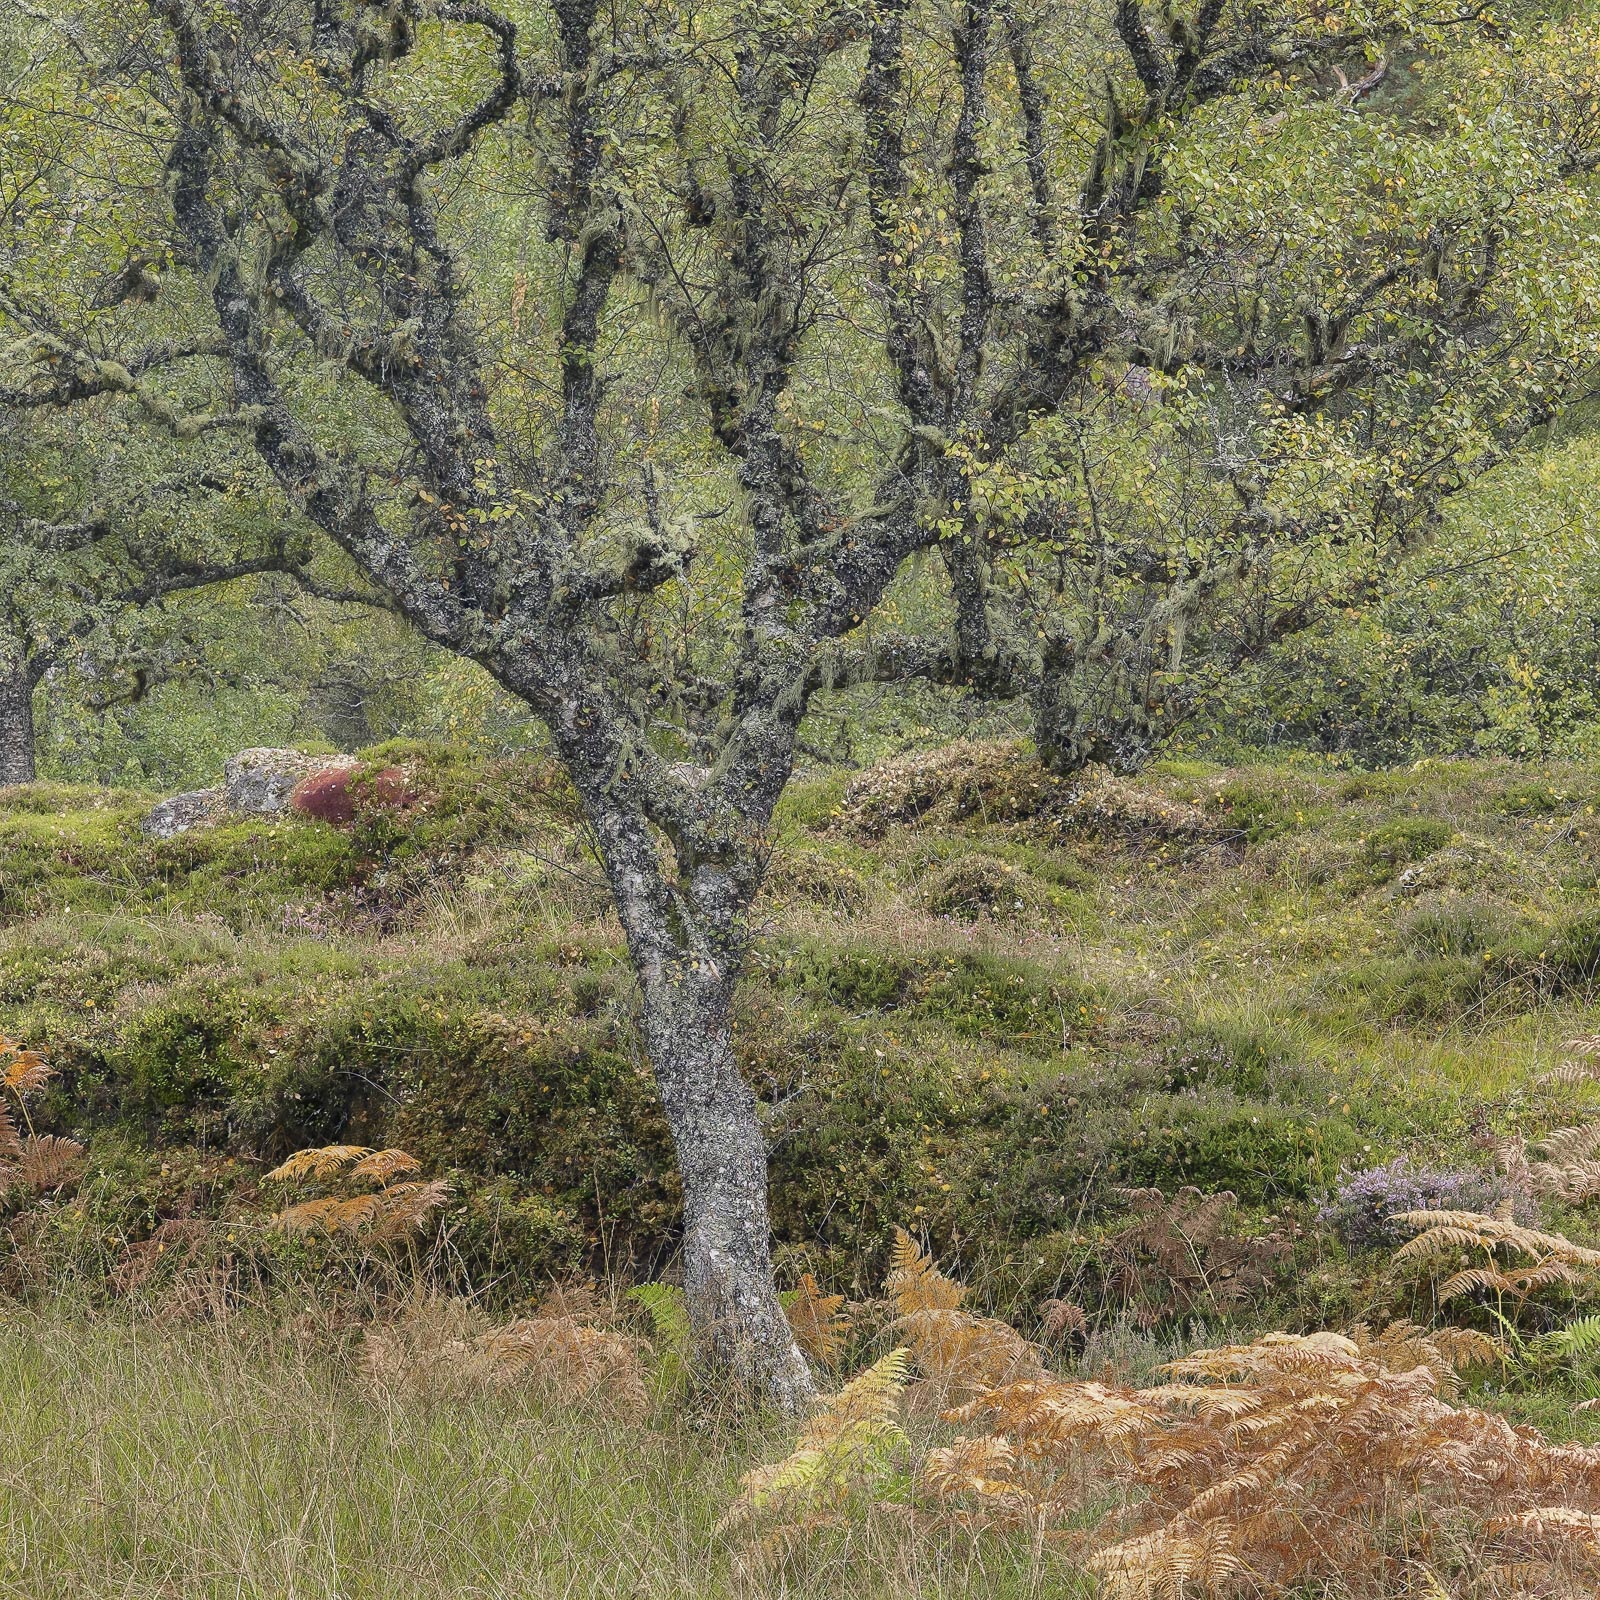 This gorgeous lichen covered birch tree stands in the Strathfarrar glen amongst freshly turned bracken, moss and a host of other...